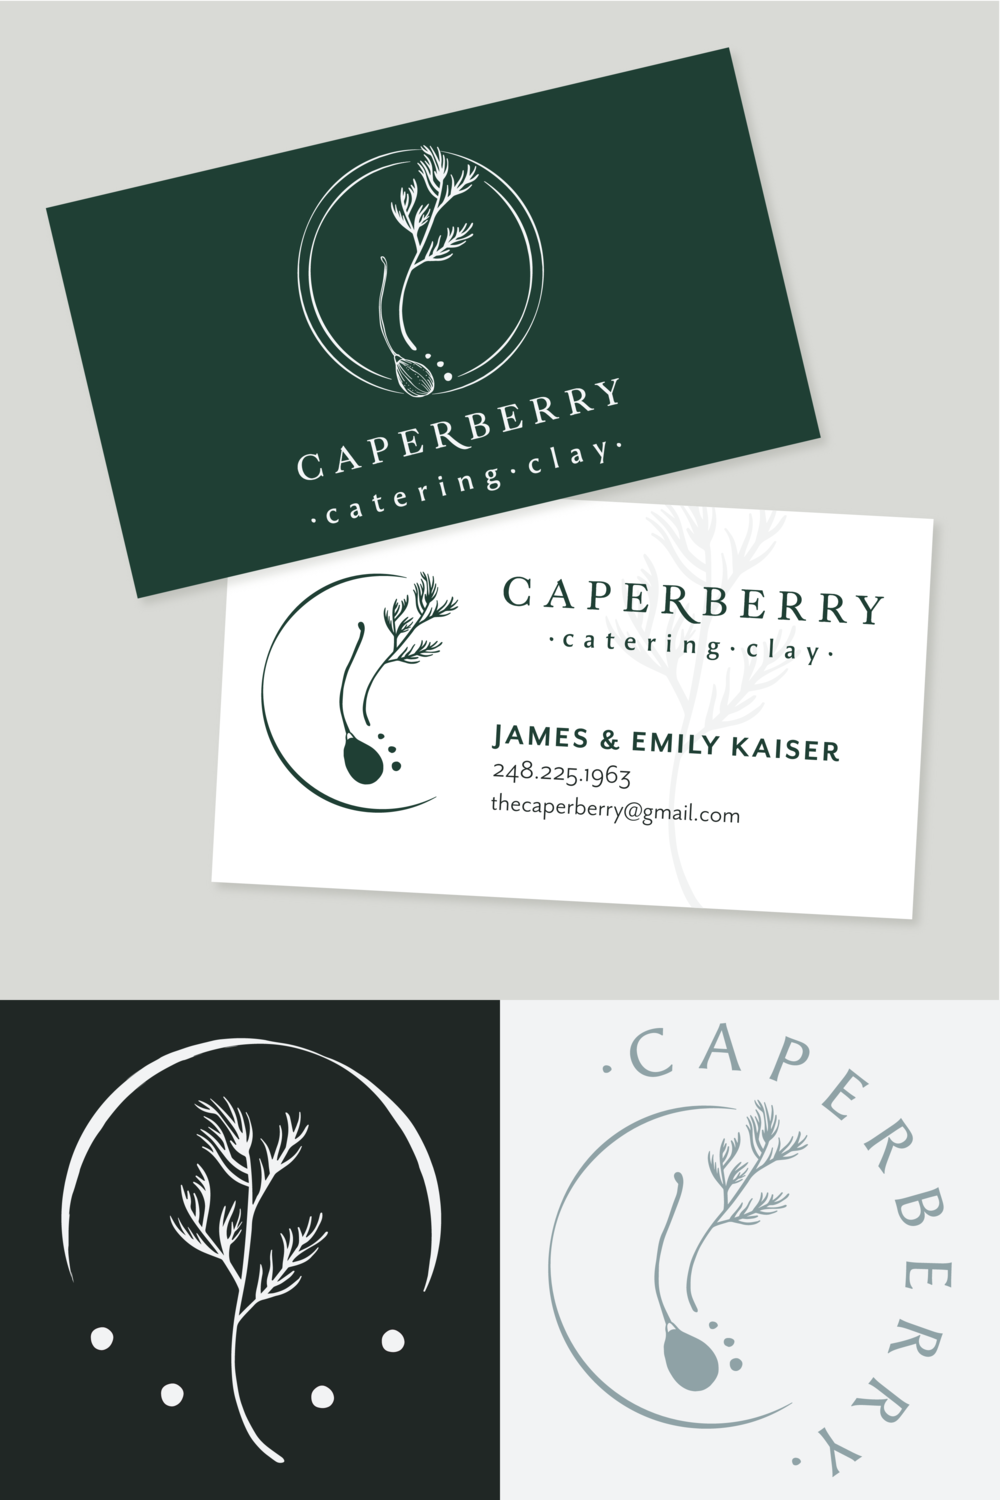 Rustic Hand Drawn Logo Design, Business Card, and Potter's Mark